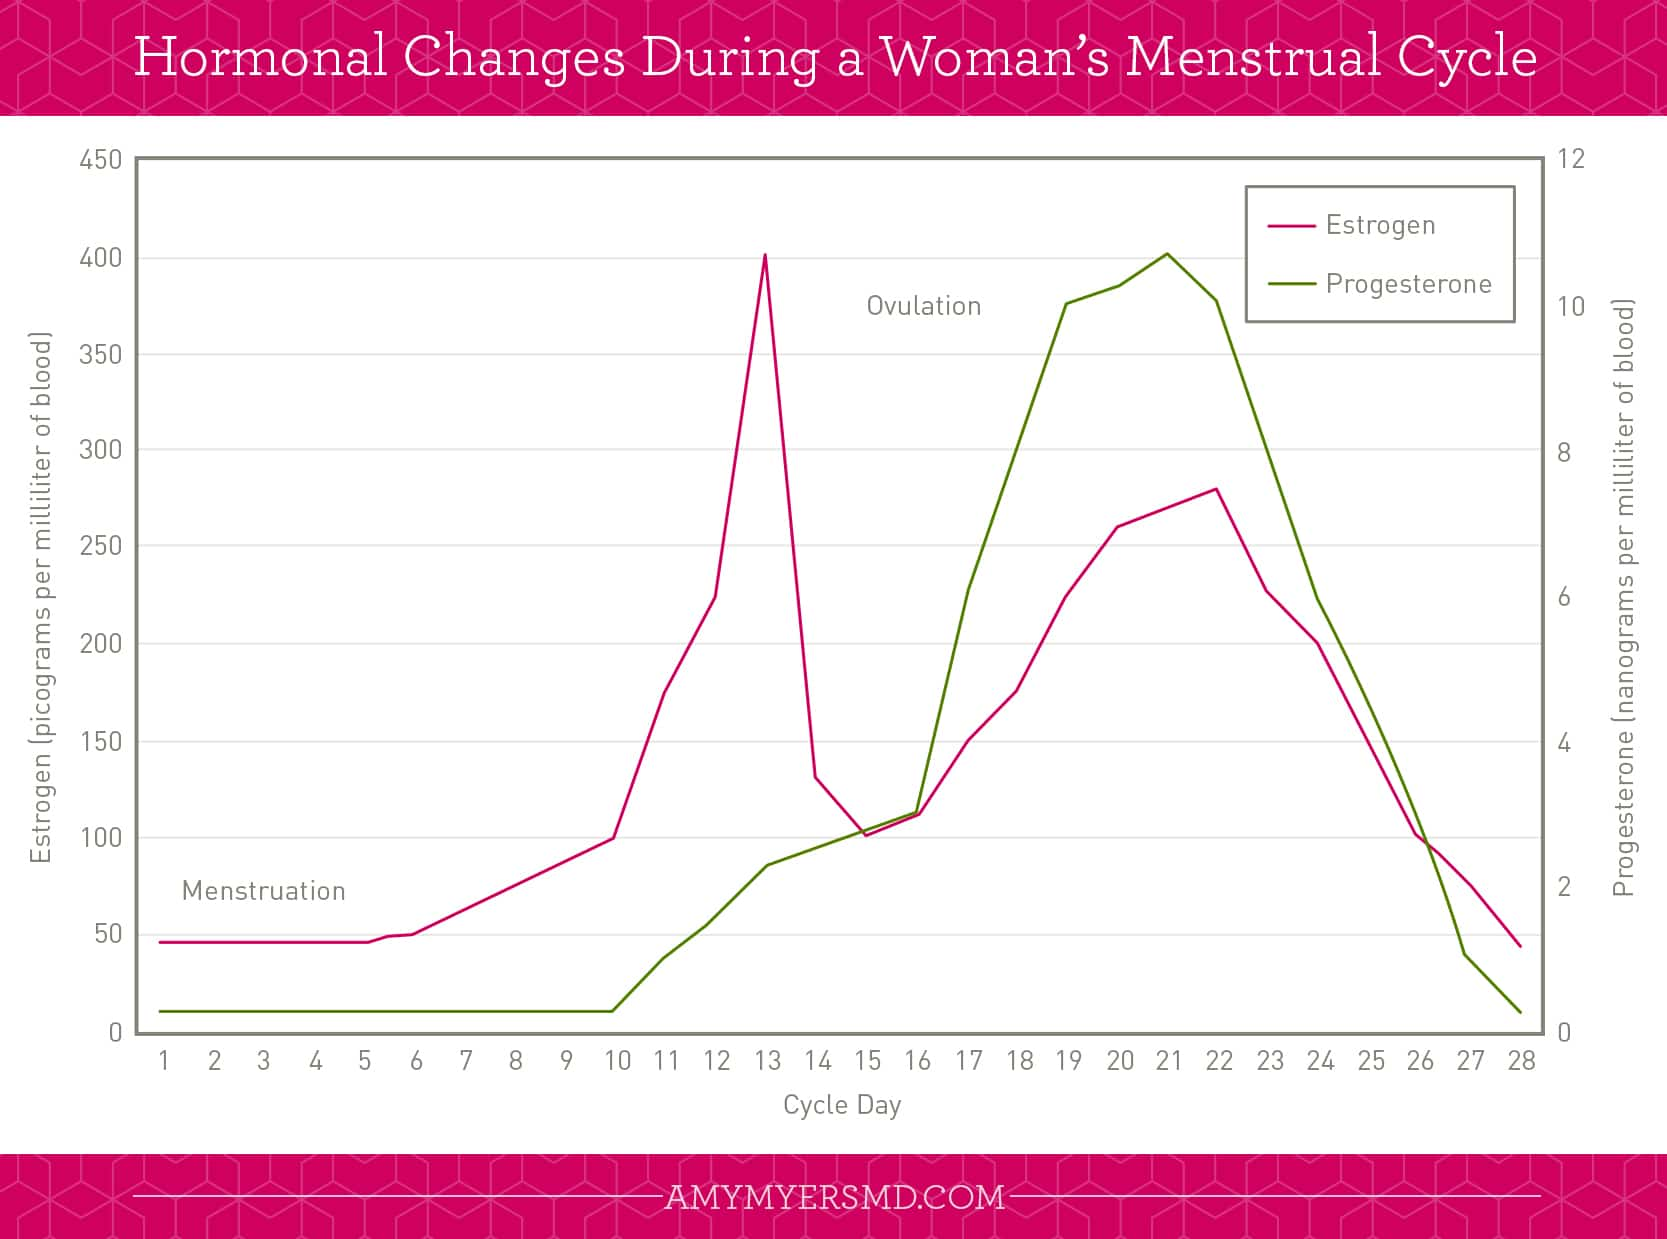 Hormone Changes During a Woman's Menstrual Cycle